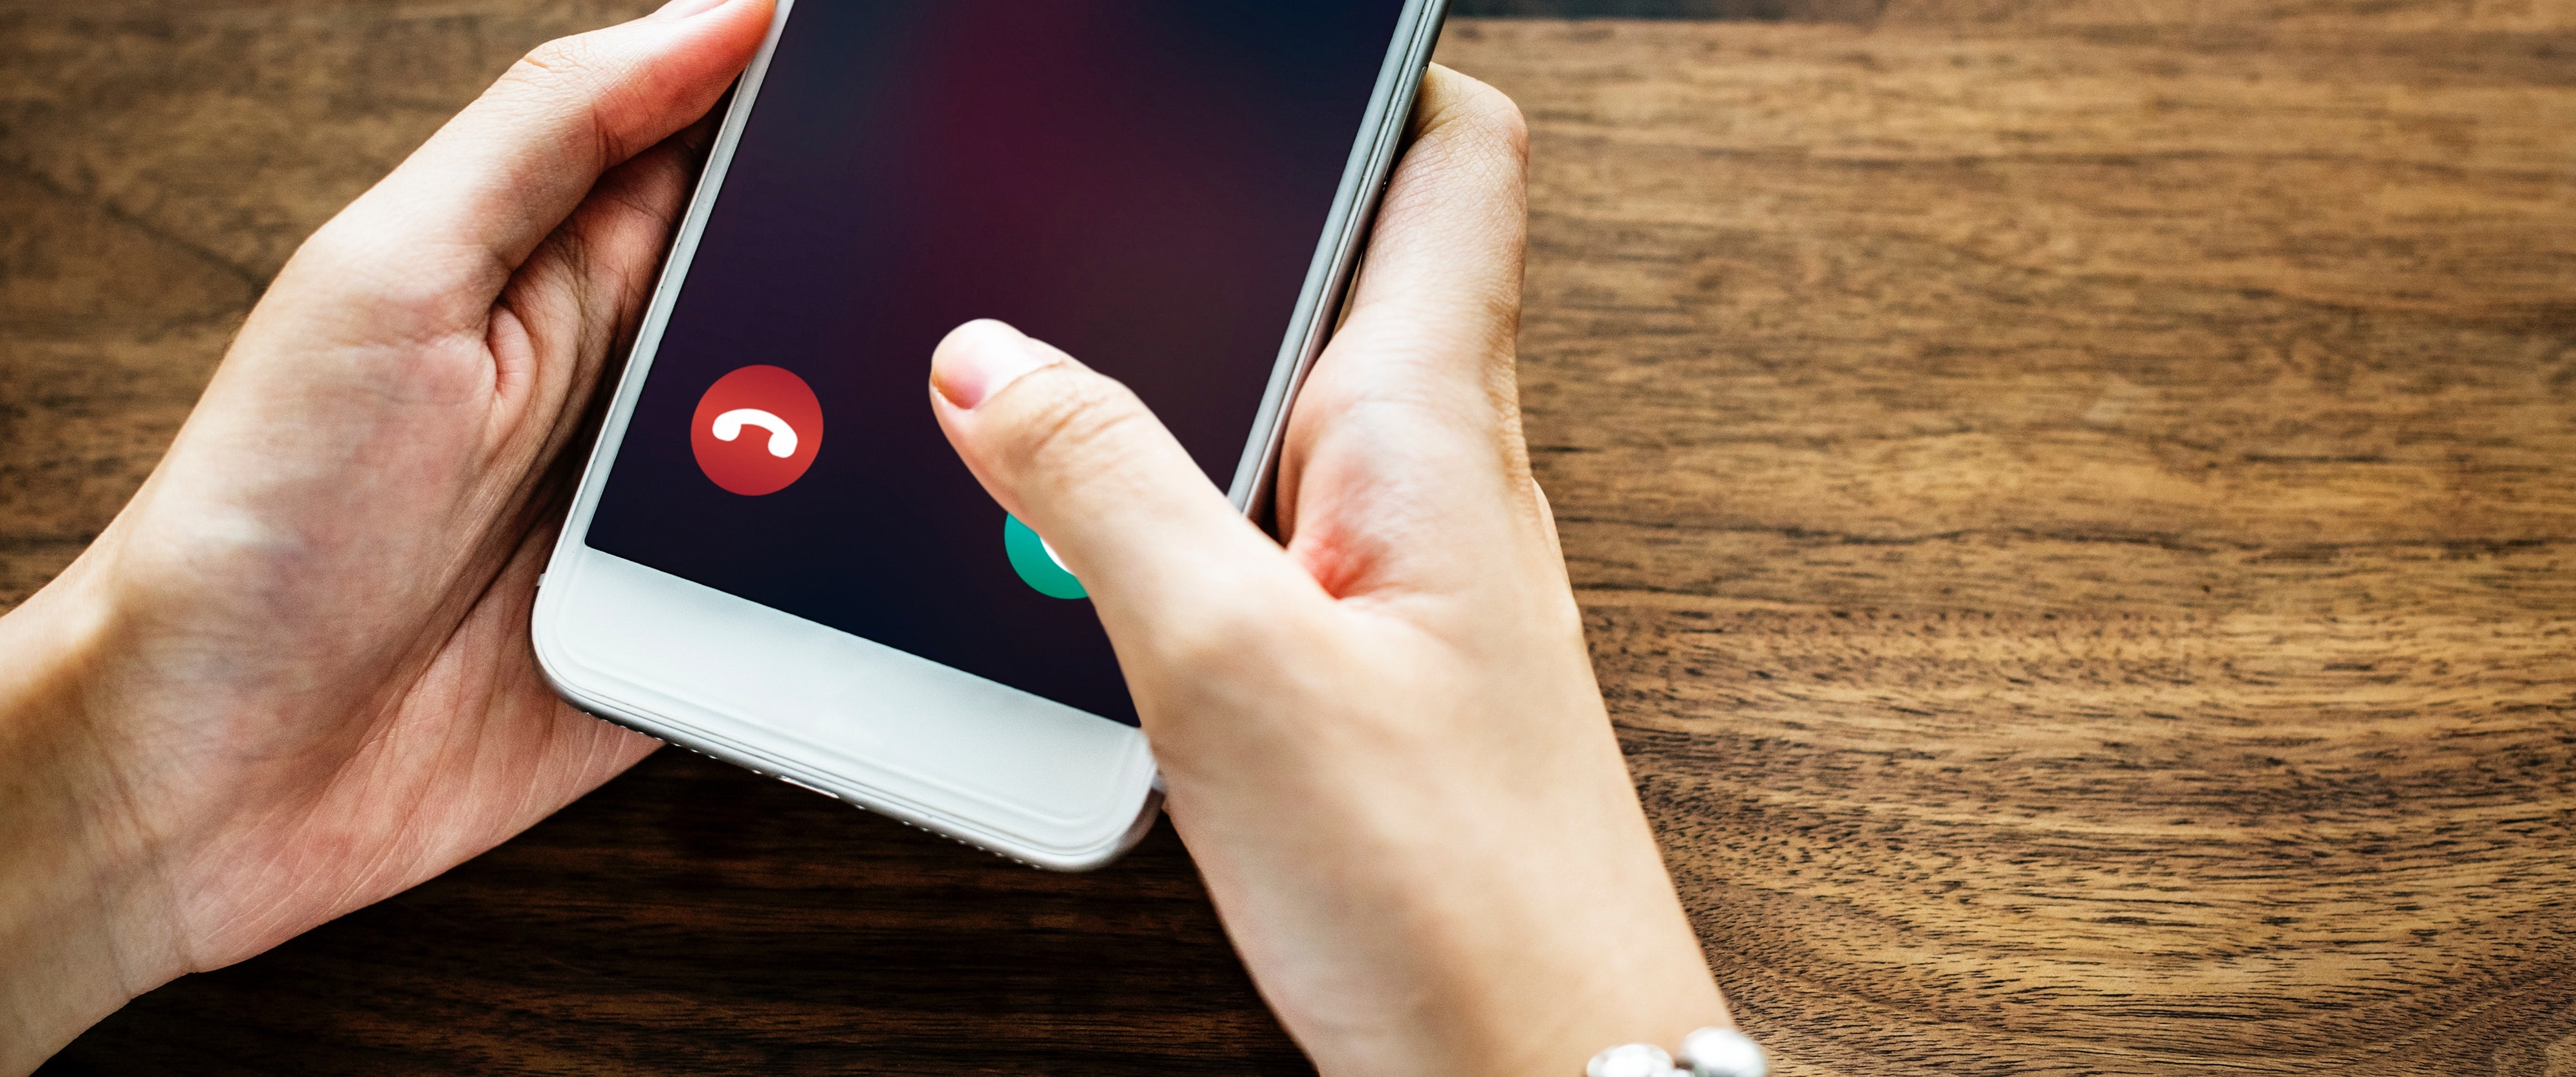 Who's Calling? How to Identify a Phone Number Carrier with Twilio Lookup -  Twilio